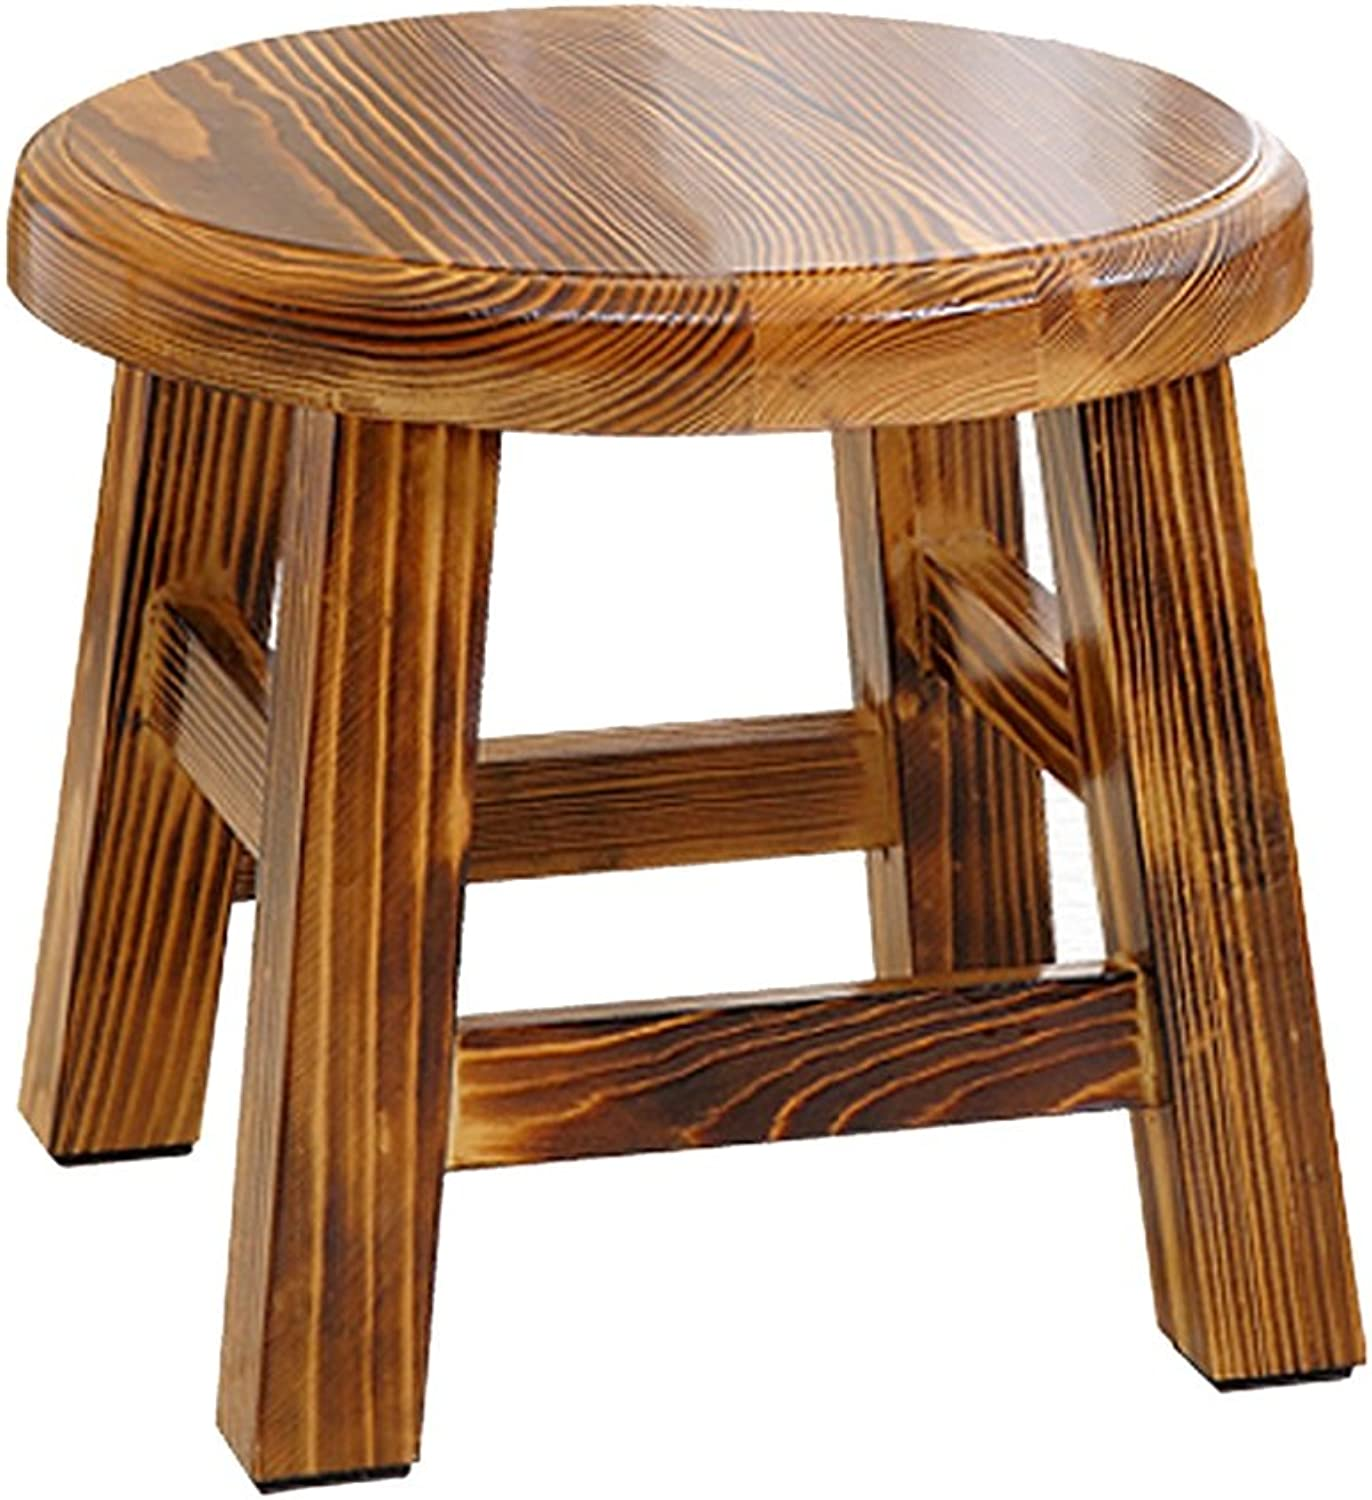 Solid wood stools home stools fashion solid wood stools shoe stools living room stools adult stools lightweight and convenient ( color    b )